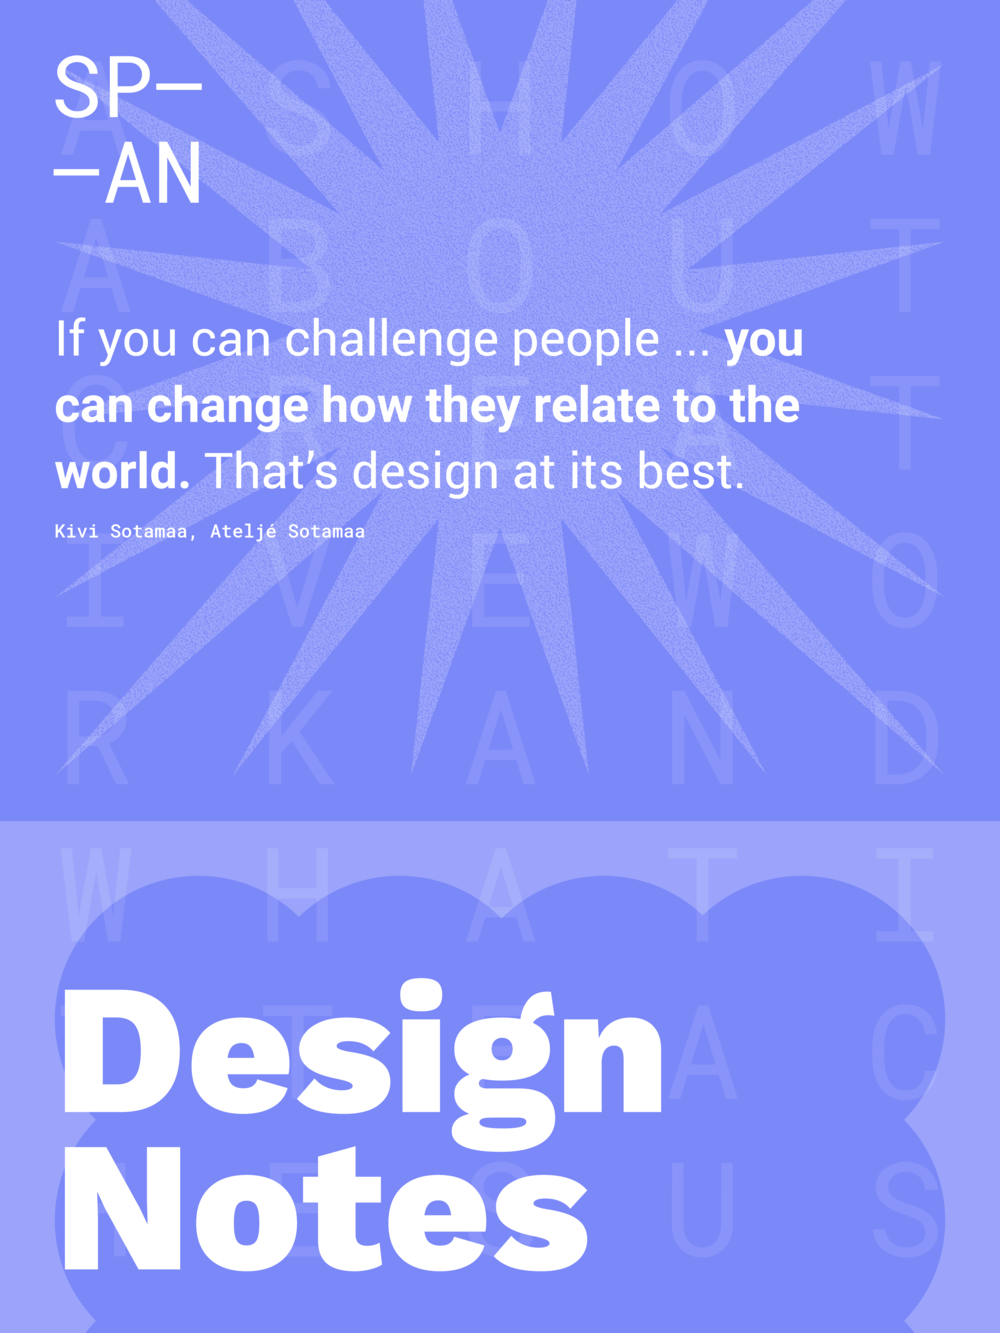 SPANxDesignNotes_Poster-Sotamaa.png